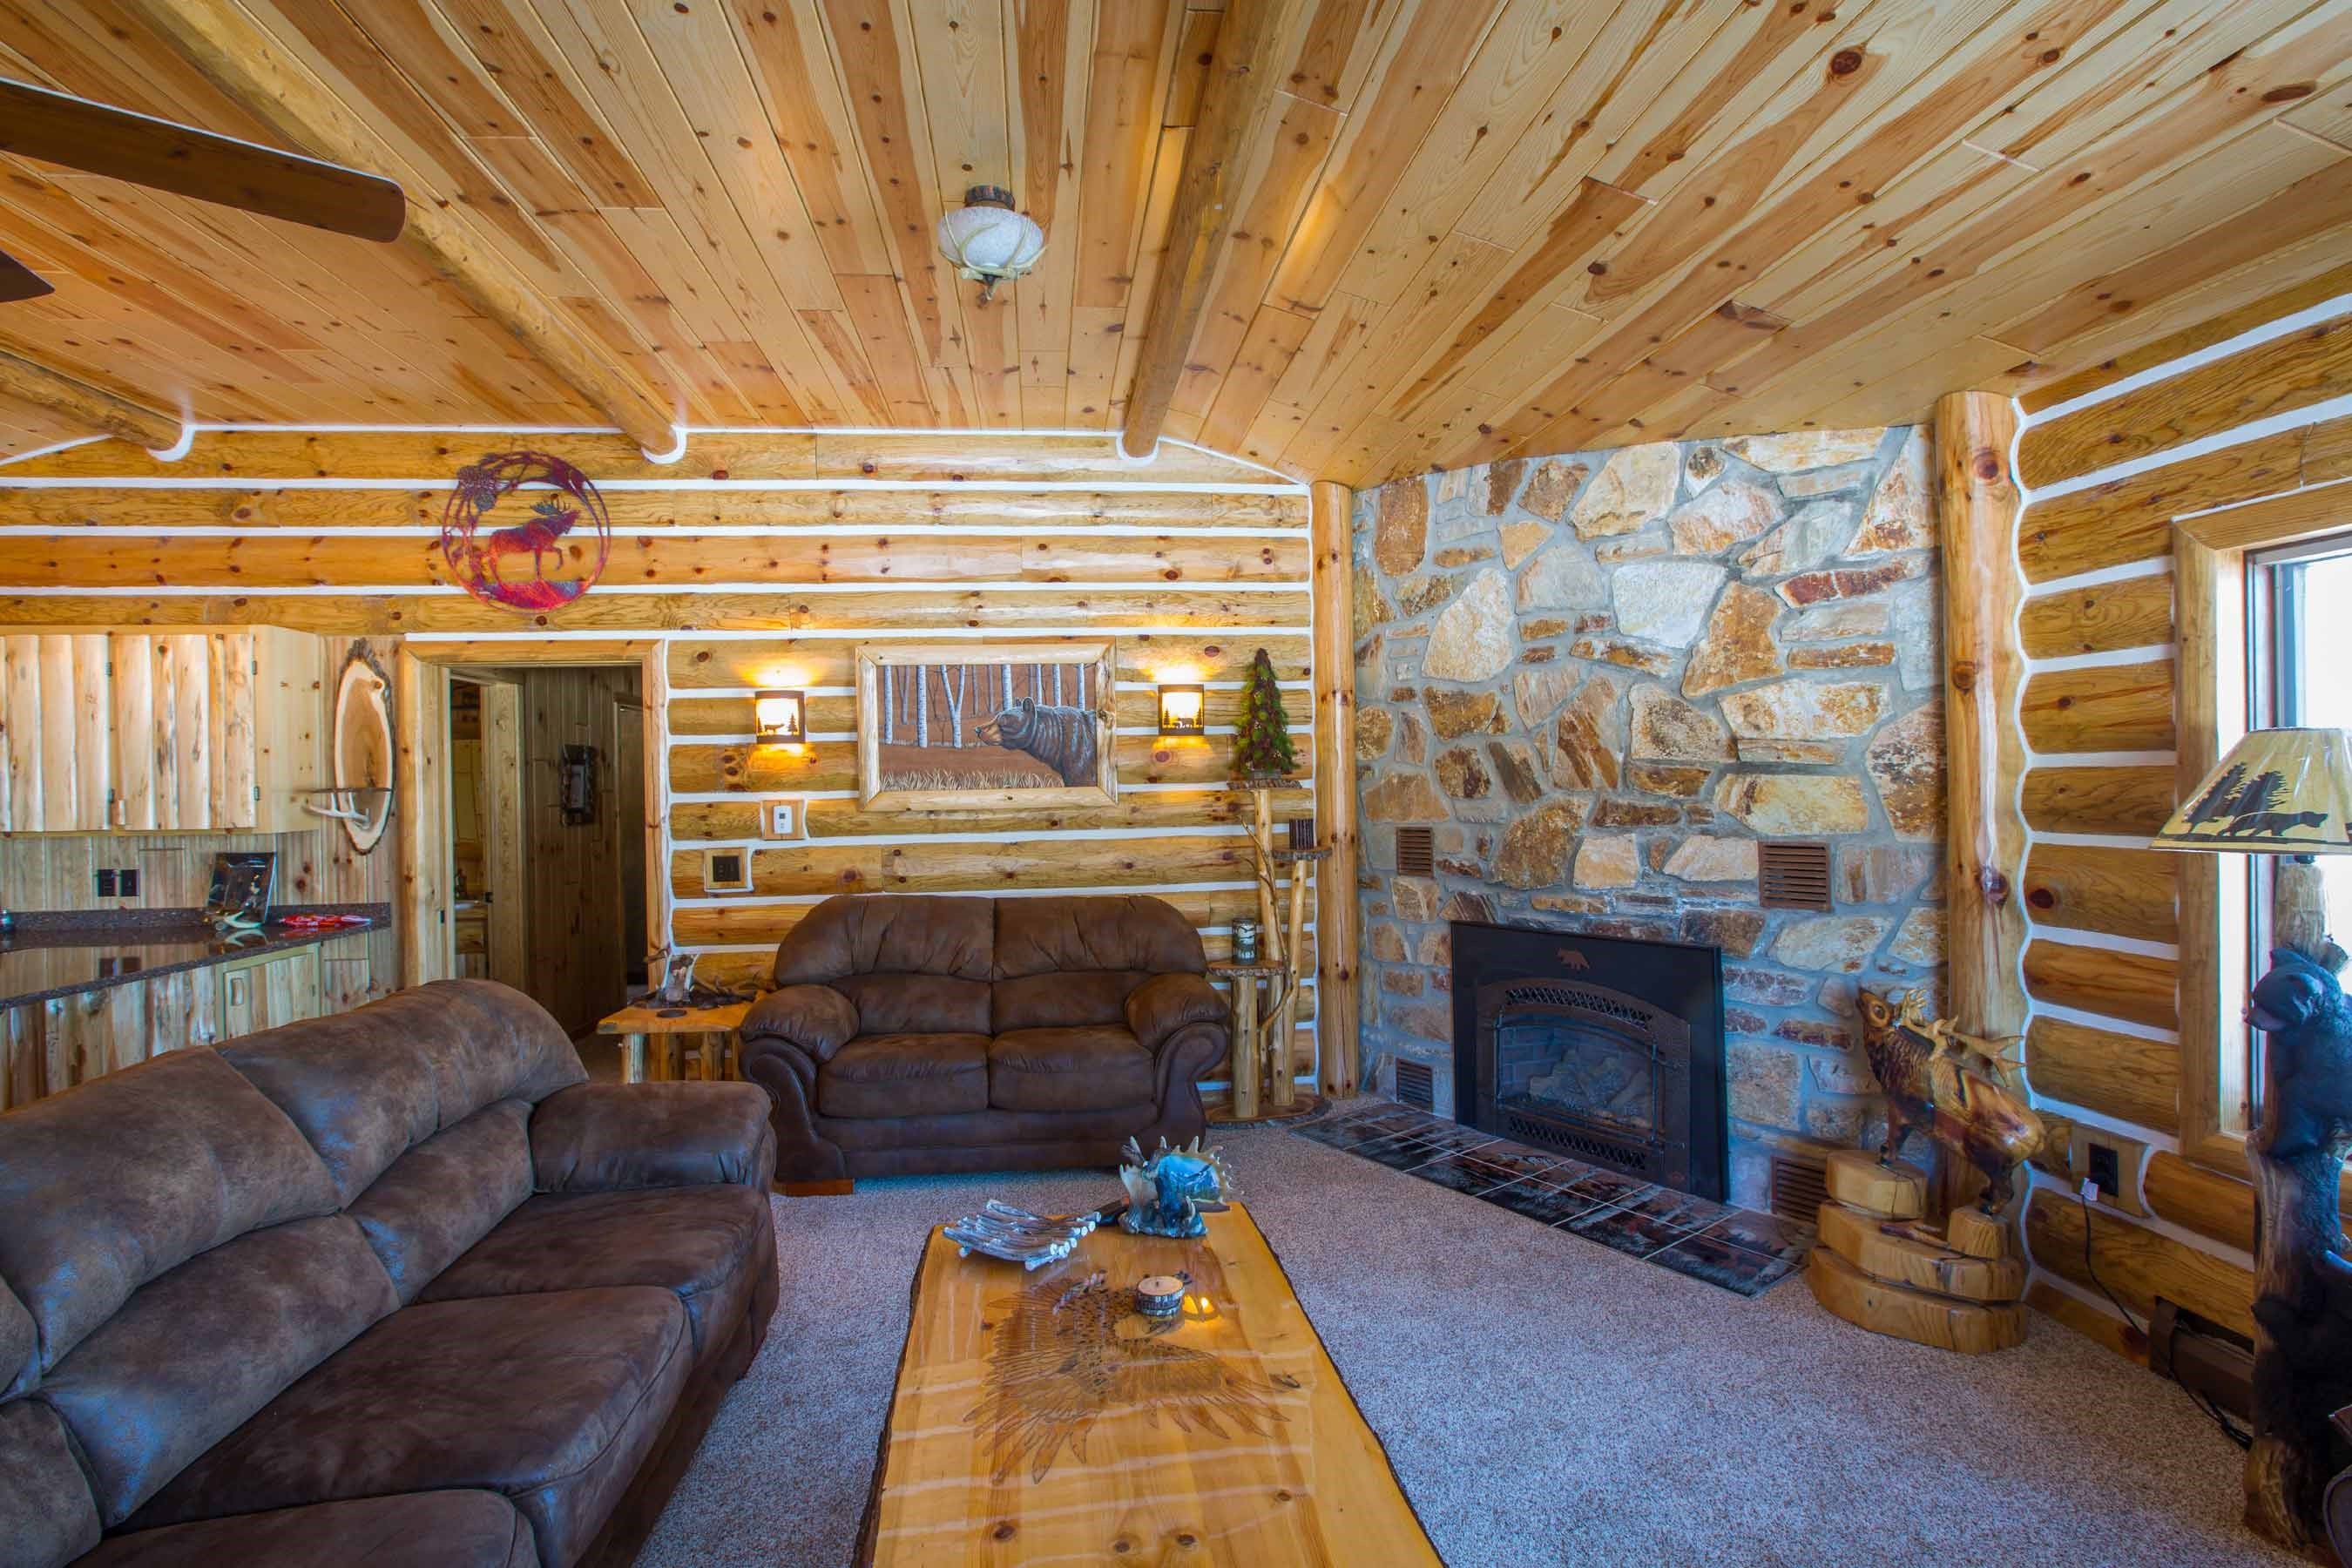 Turn Your Den Into a Rustic Log Cabin Atmosphere